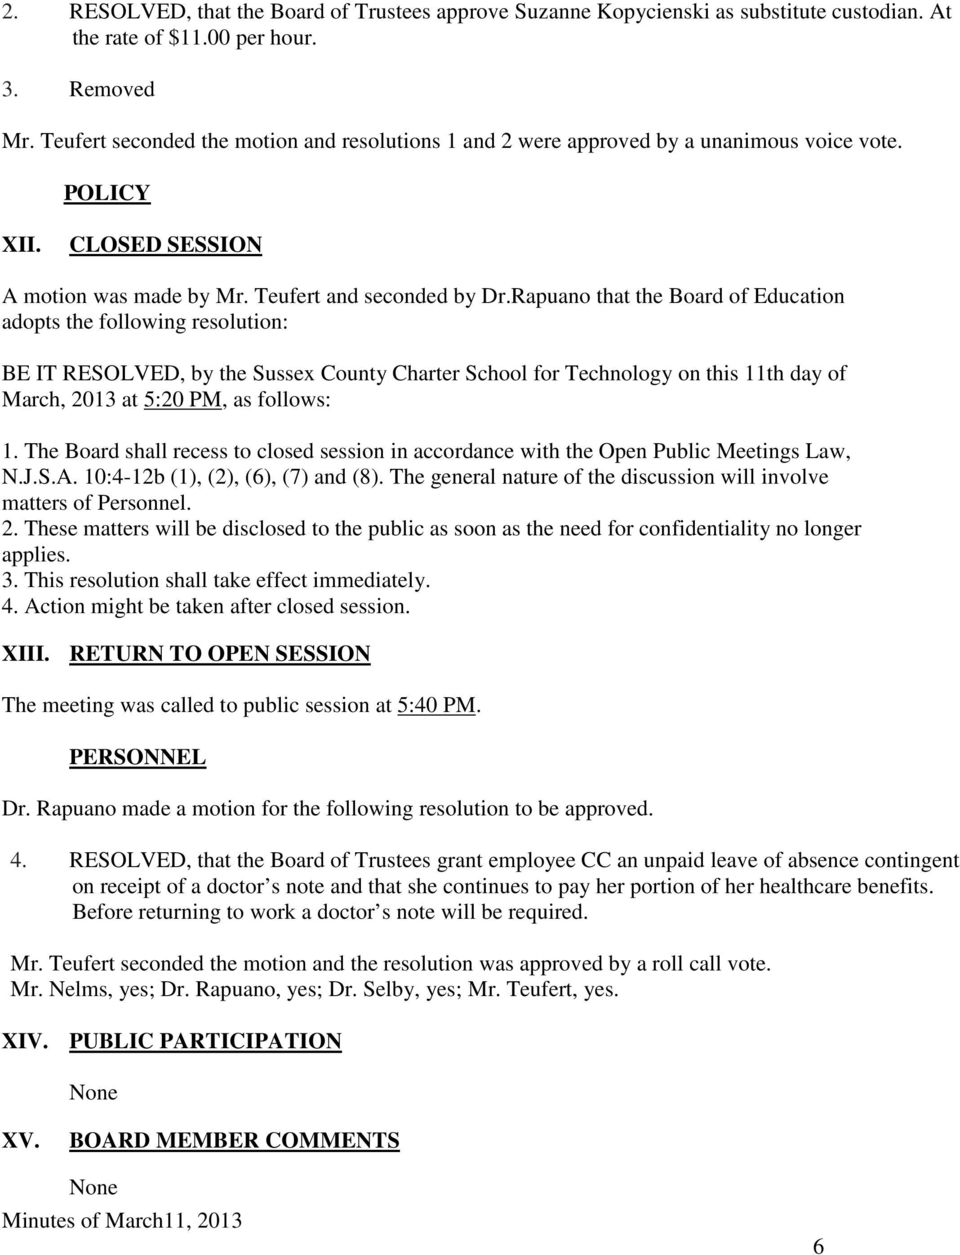 Rapuano that the Board of Education adopts the following resolution: BE IT RESOLVED, by the Sussex County Charter School for Technology on this 11th day of March, 2013 at 5:20 PM, as follows: 1.